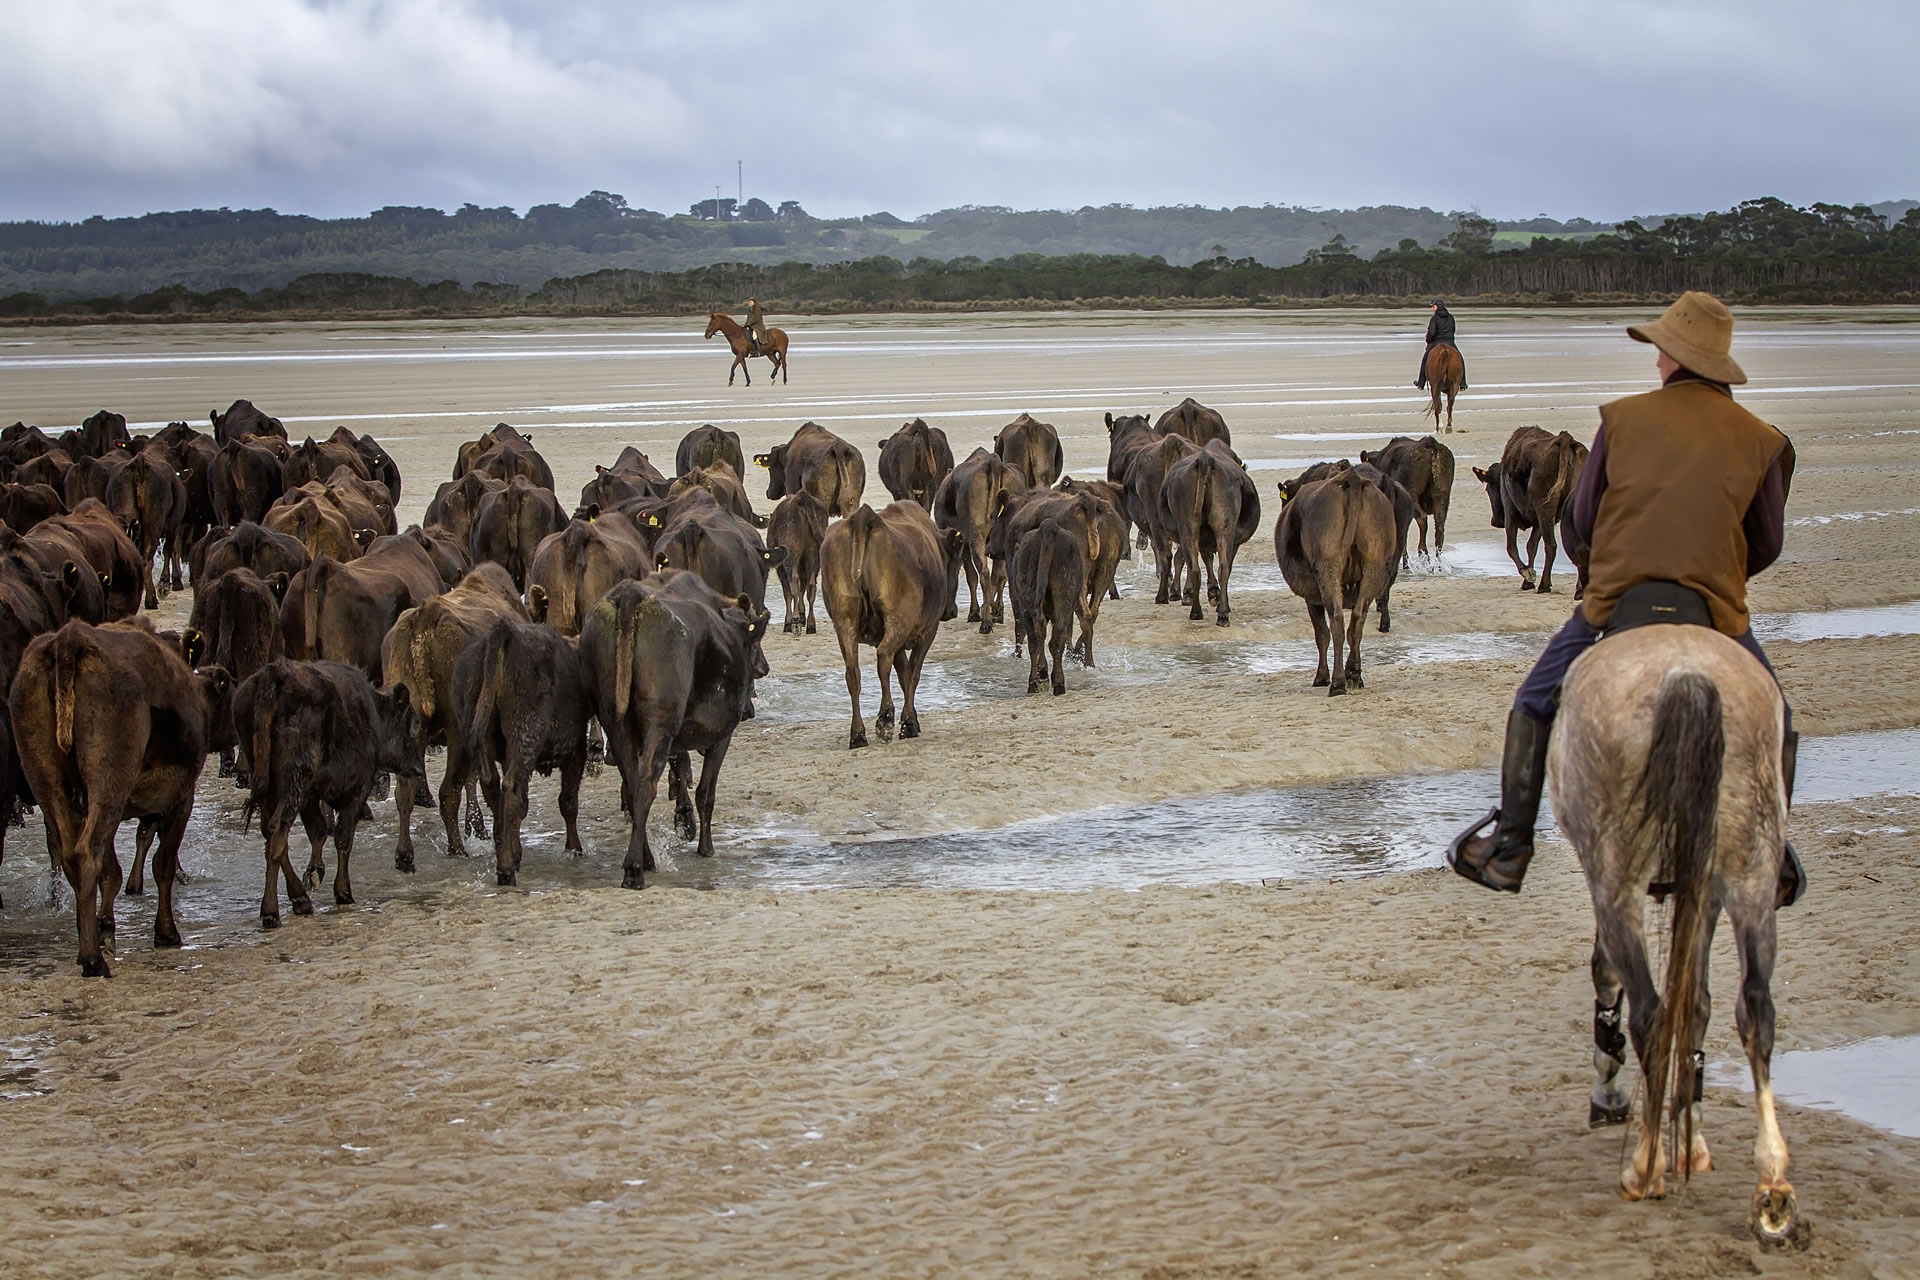 Moving cattle at low tide